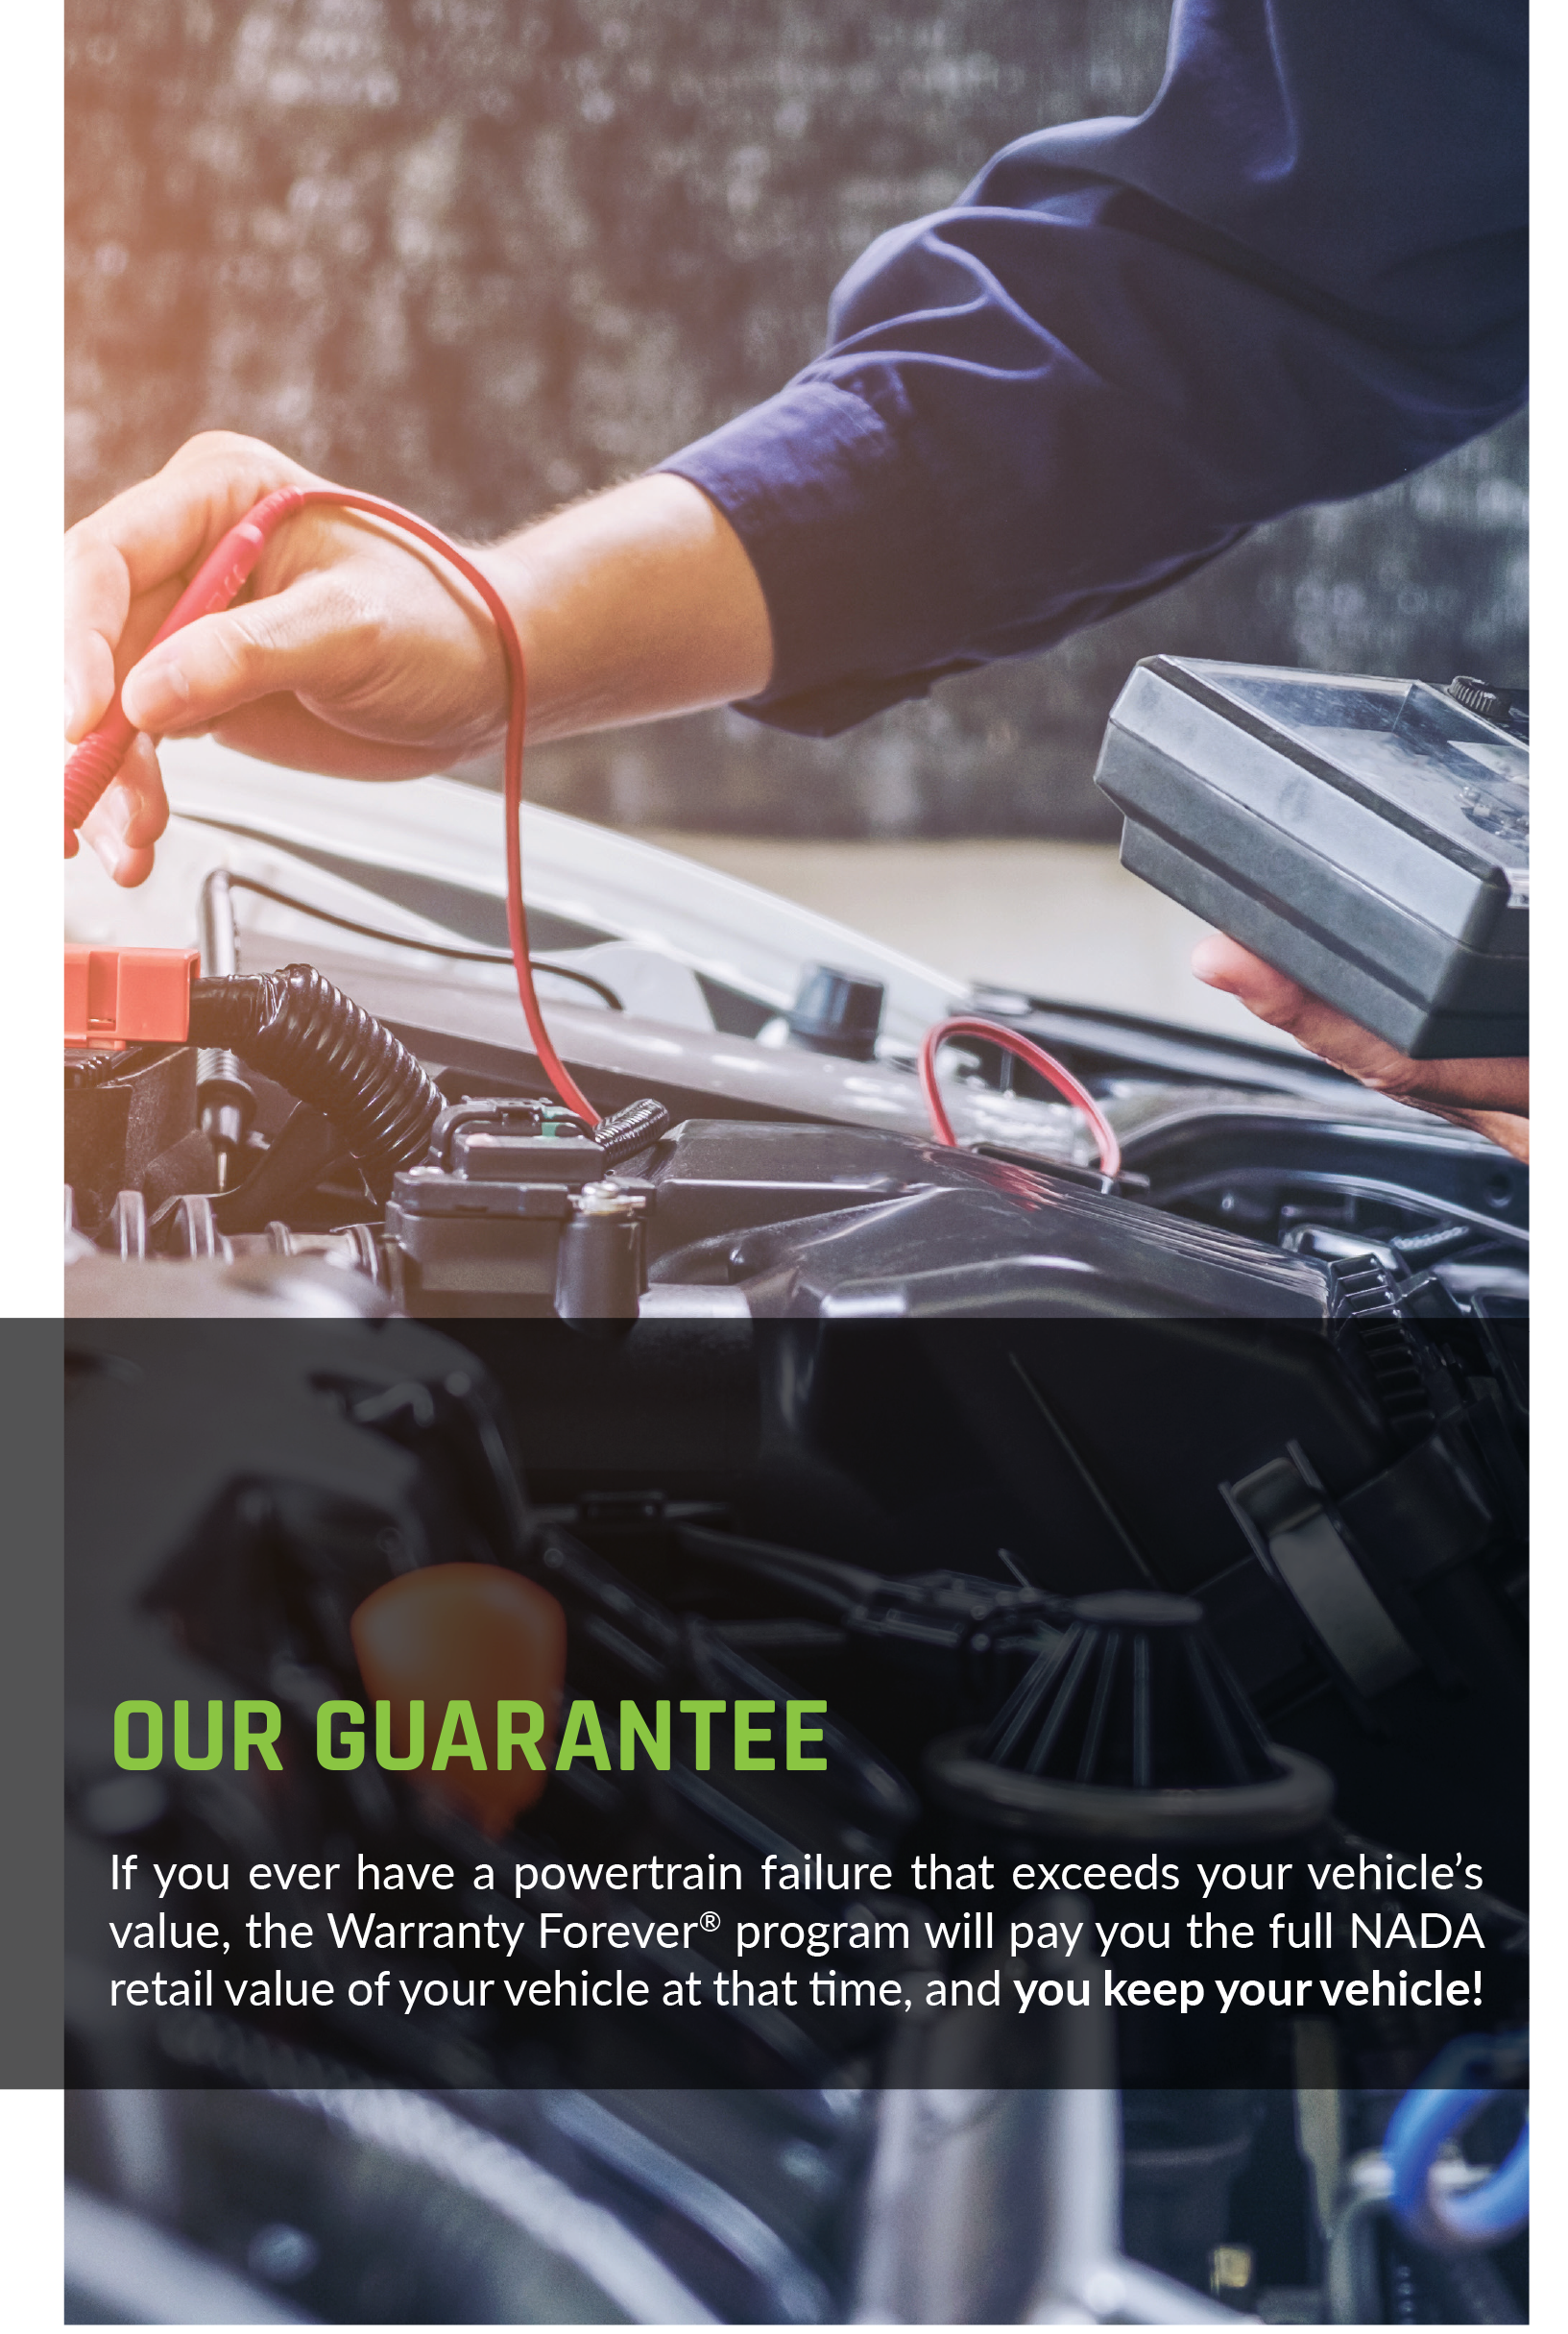 Warranty Forever - Texas City Dealers - Houston Dealership - Conroe Dealer - Texas Dealers ...